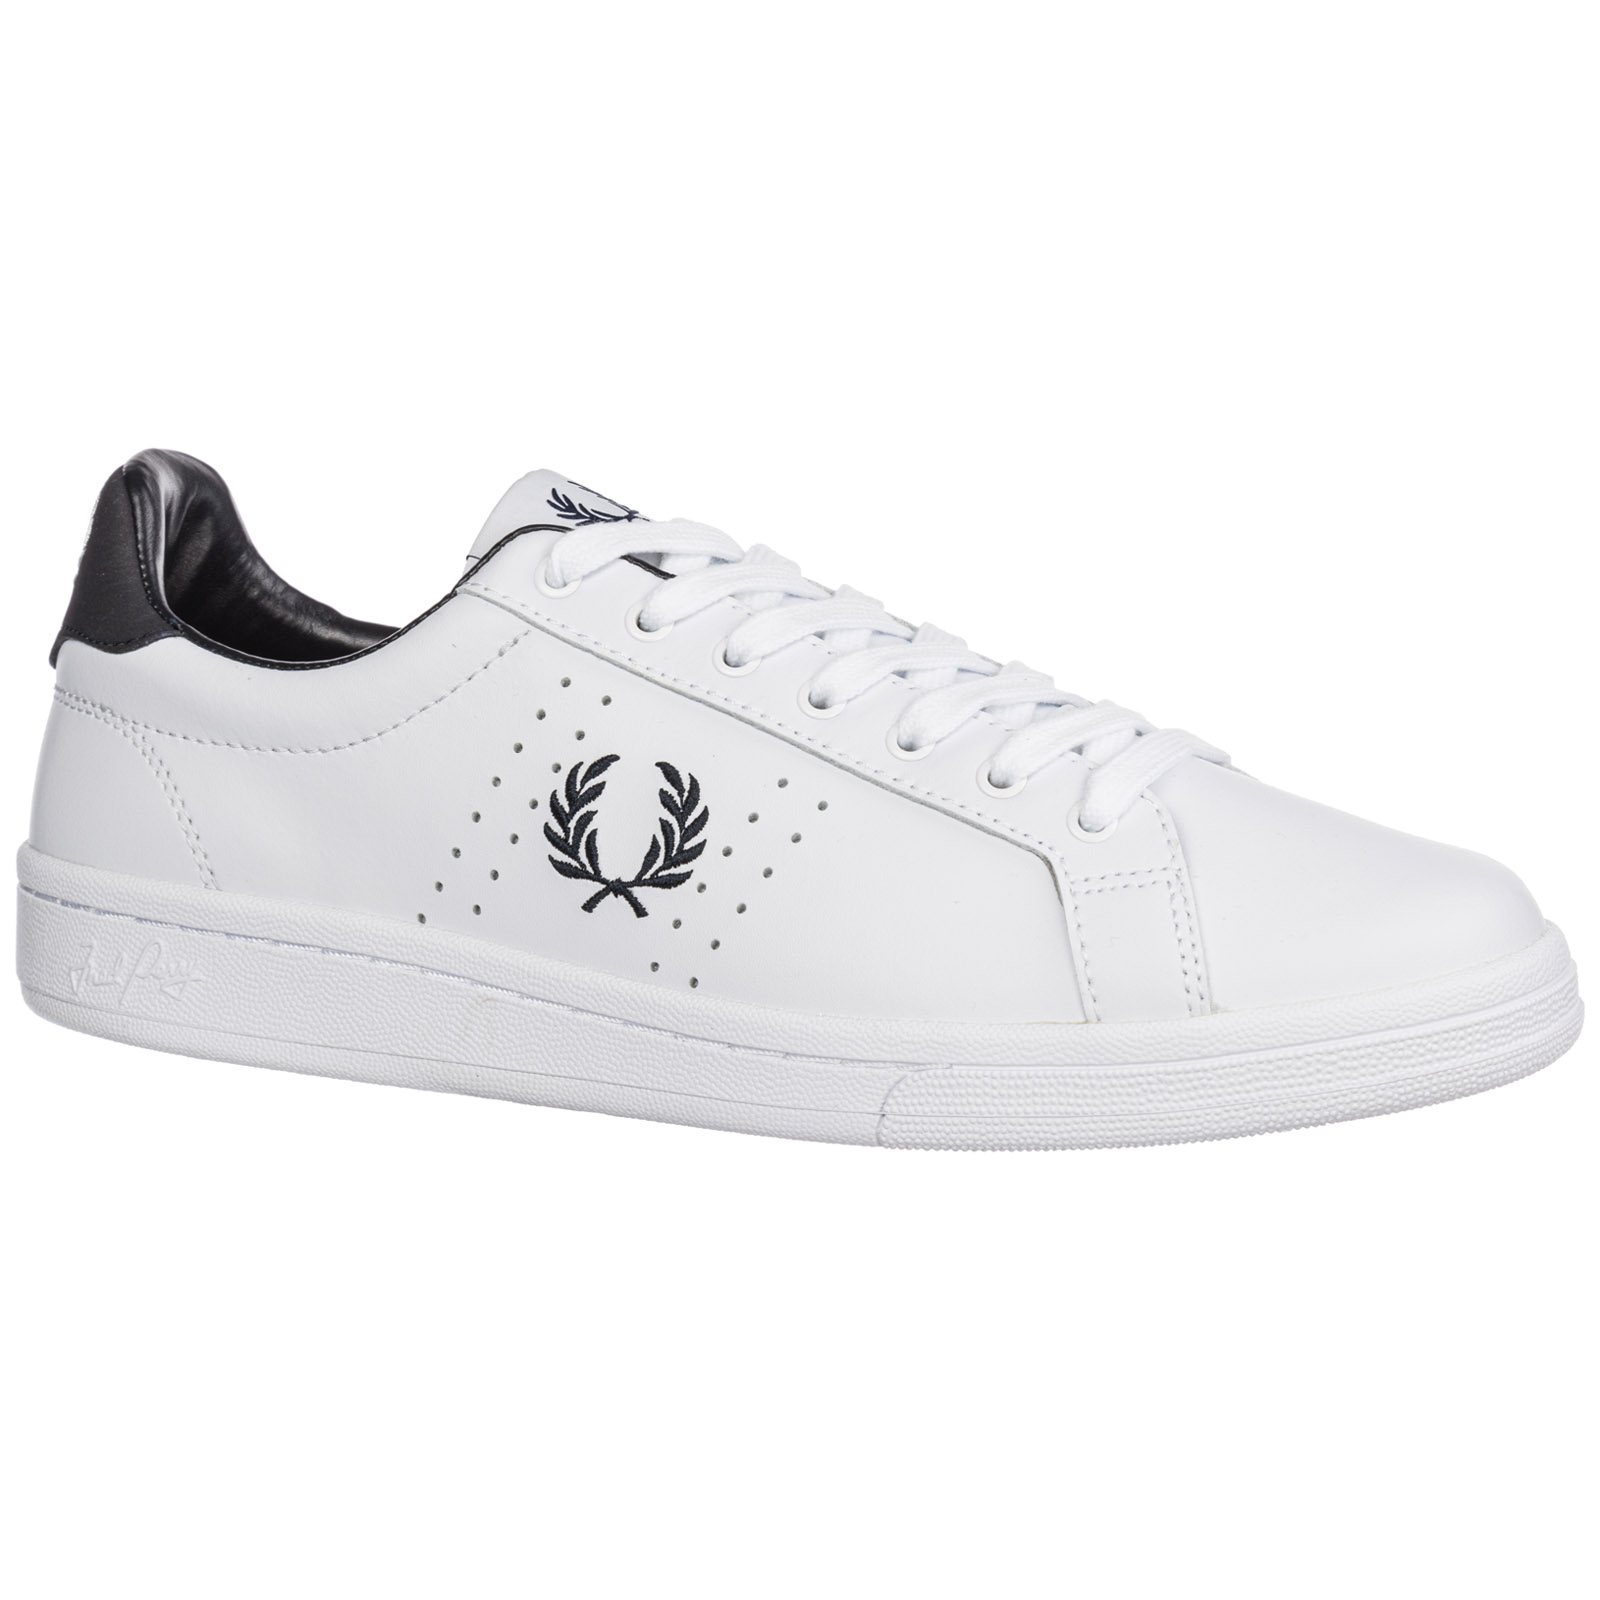 Men's shoes leather trainers sneakers b721